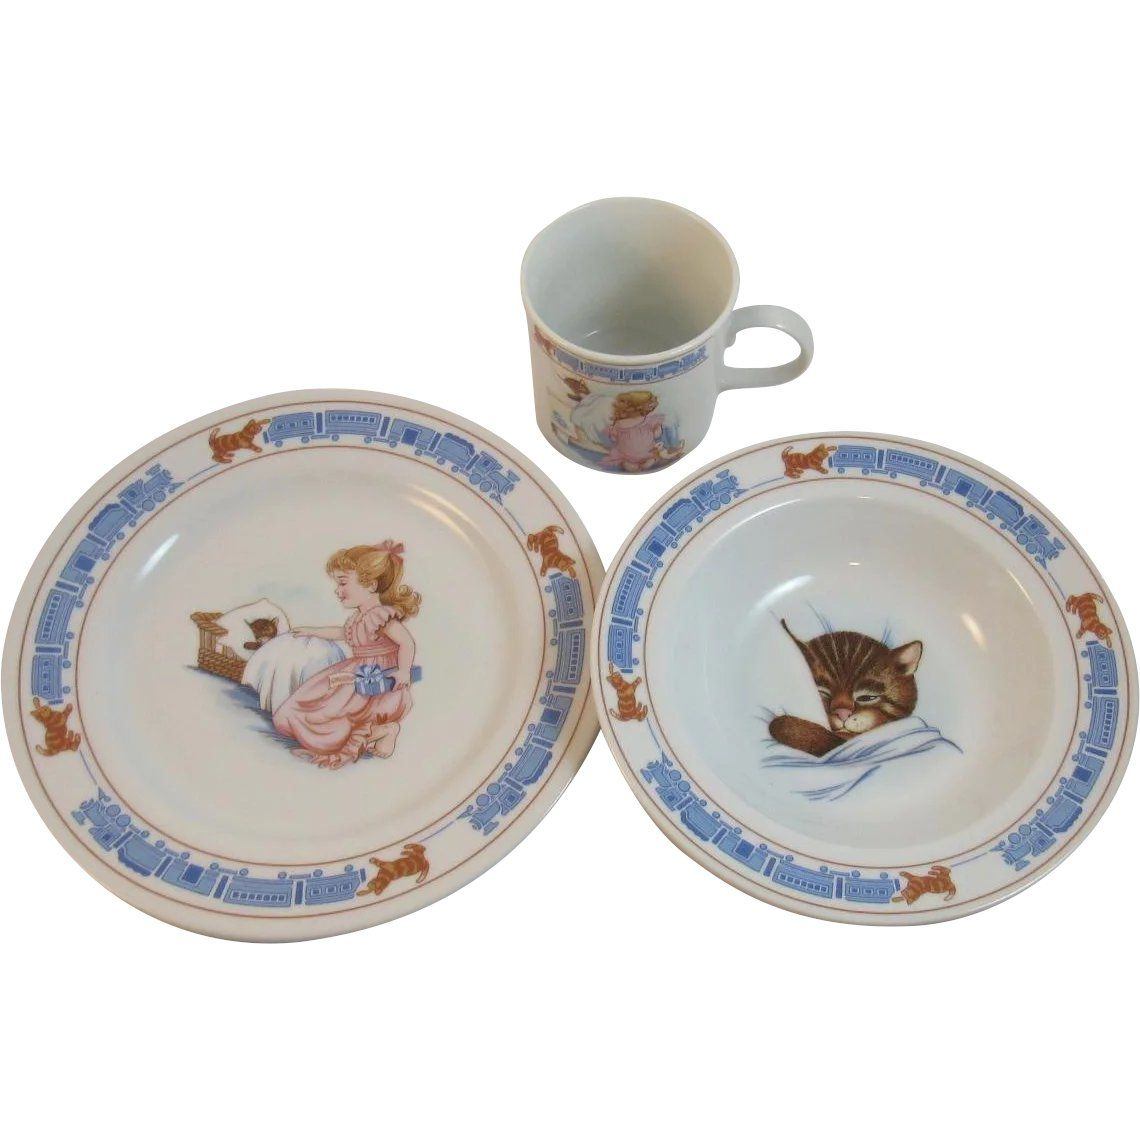 Chessie For Children Dishes Set By Woodmere China Chesapeake And Ohio Railway System Cat Kitty Bowl Plate Cup Mug Plates And Bowls Childrens Dishes Dish Sets